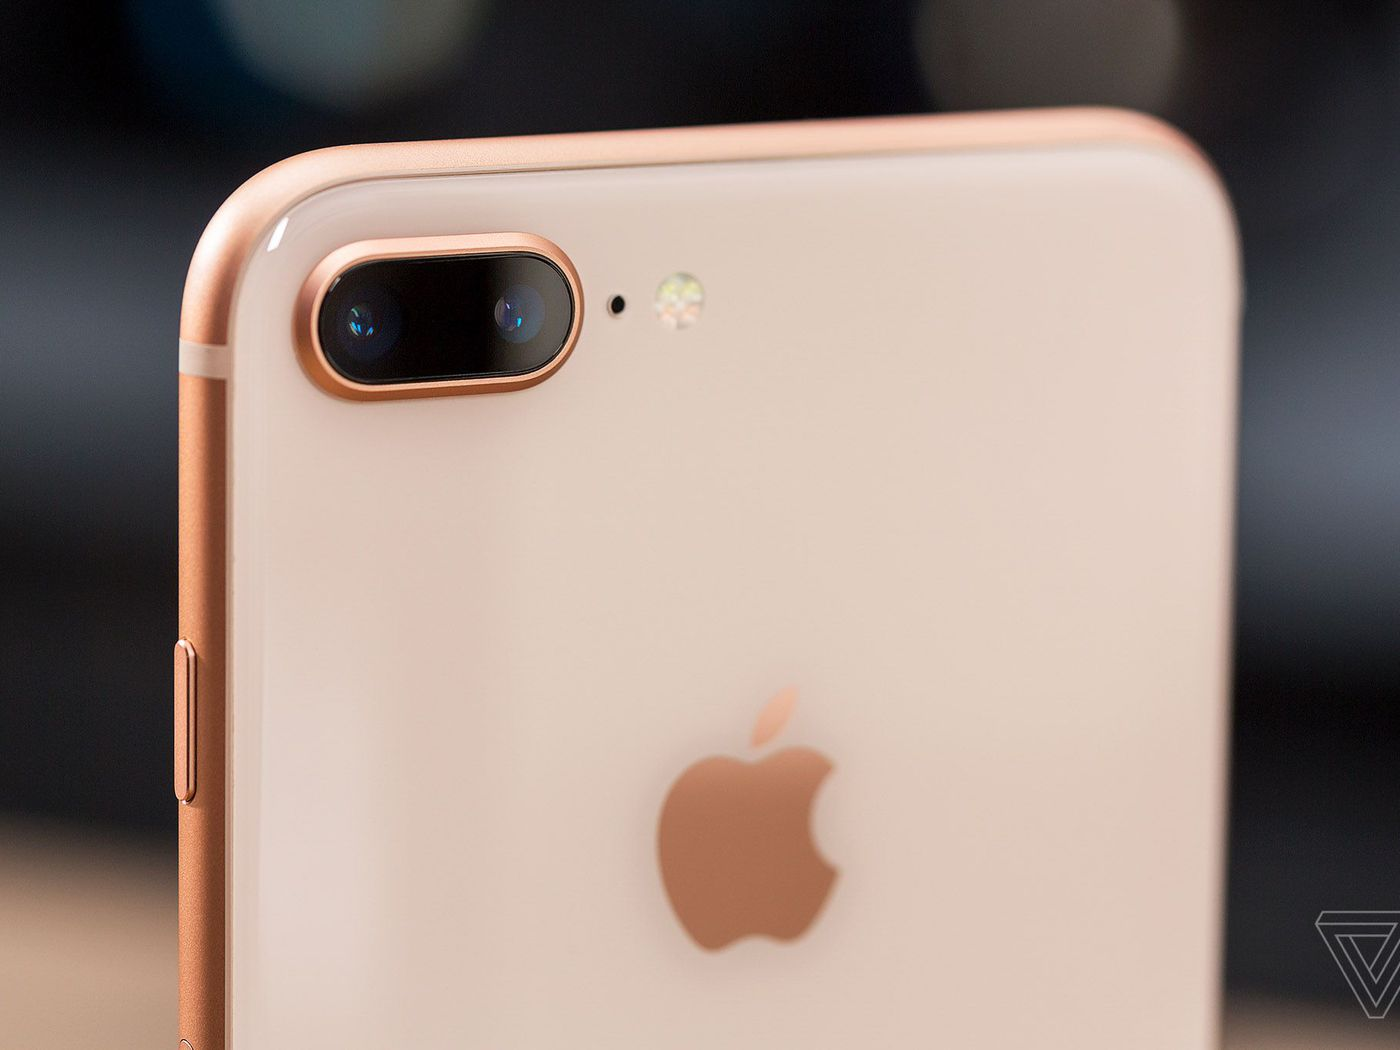 What if the iPhone 8 Plus is better than the iPhone X? - The Verge